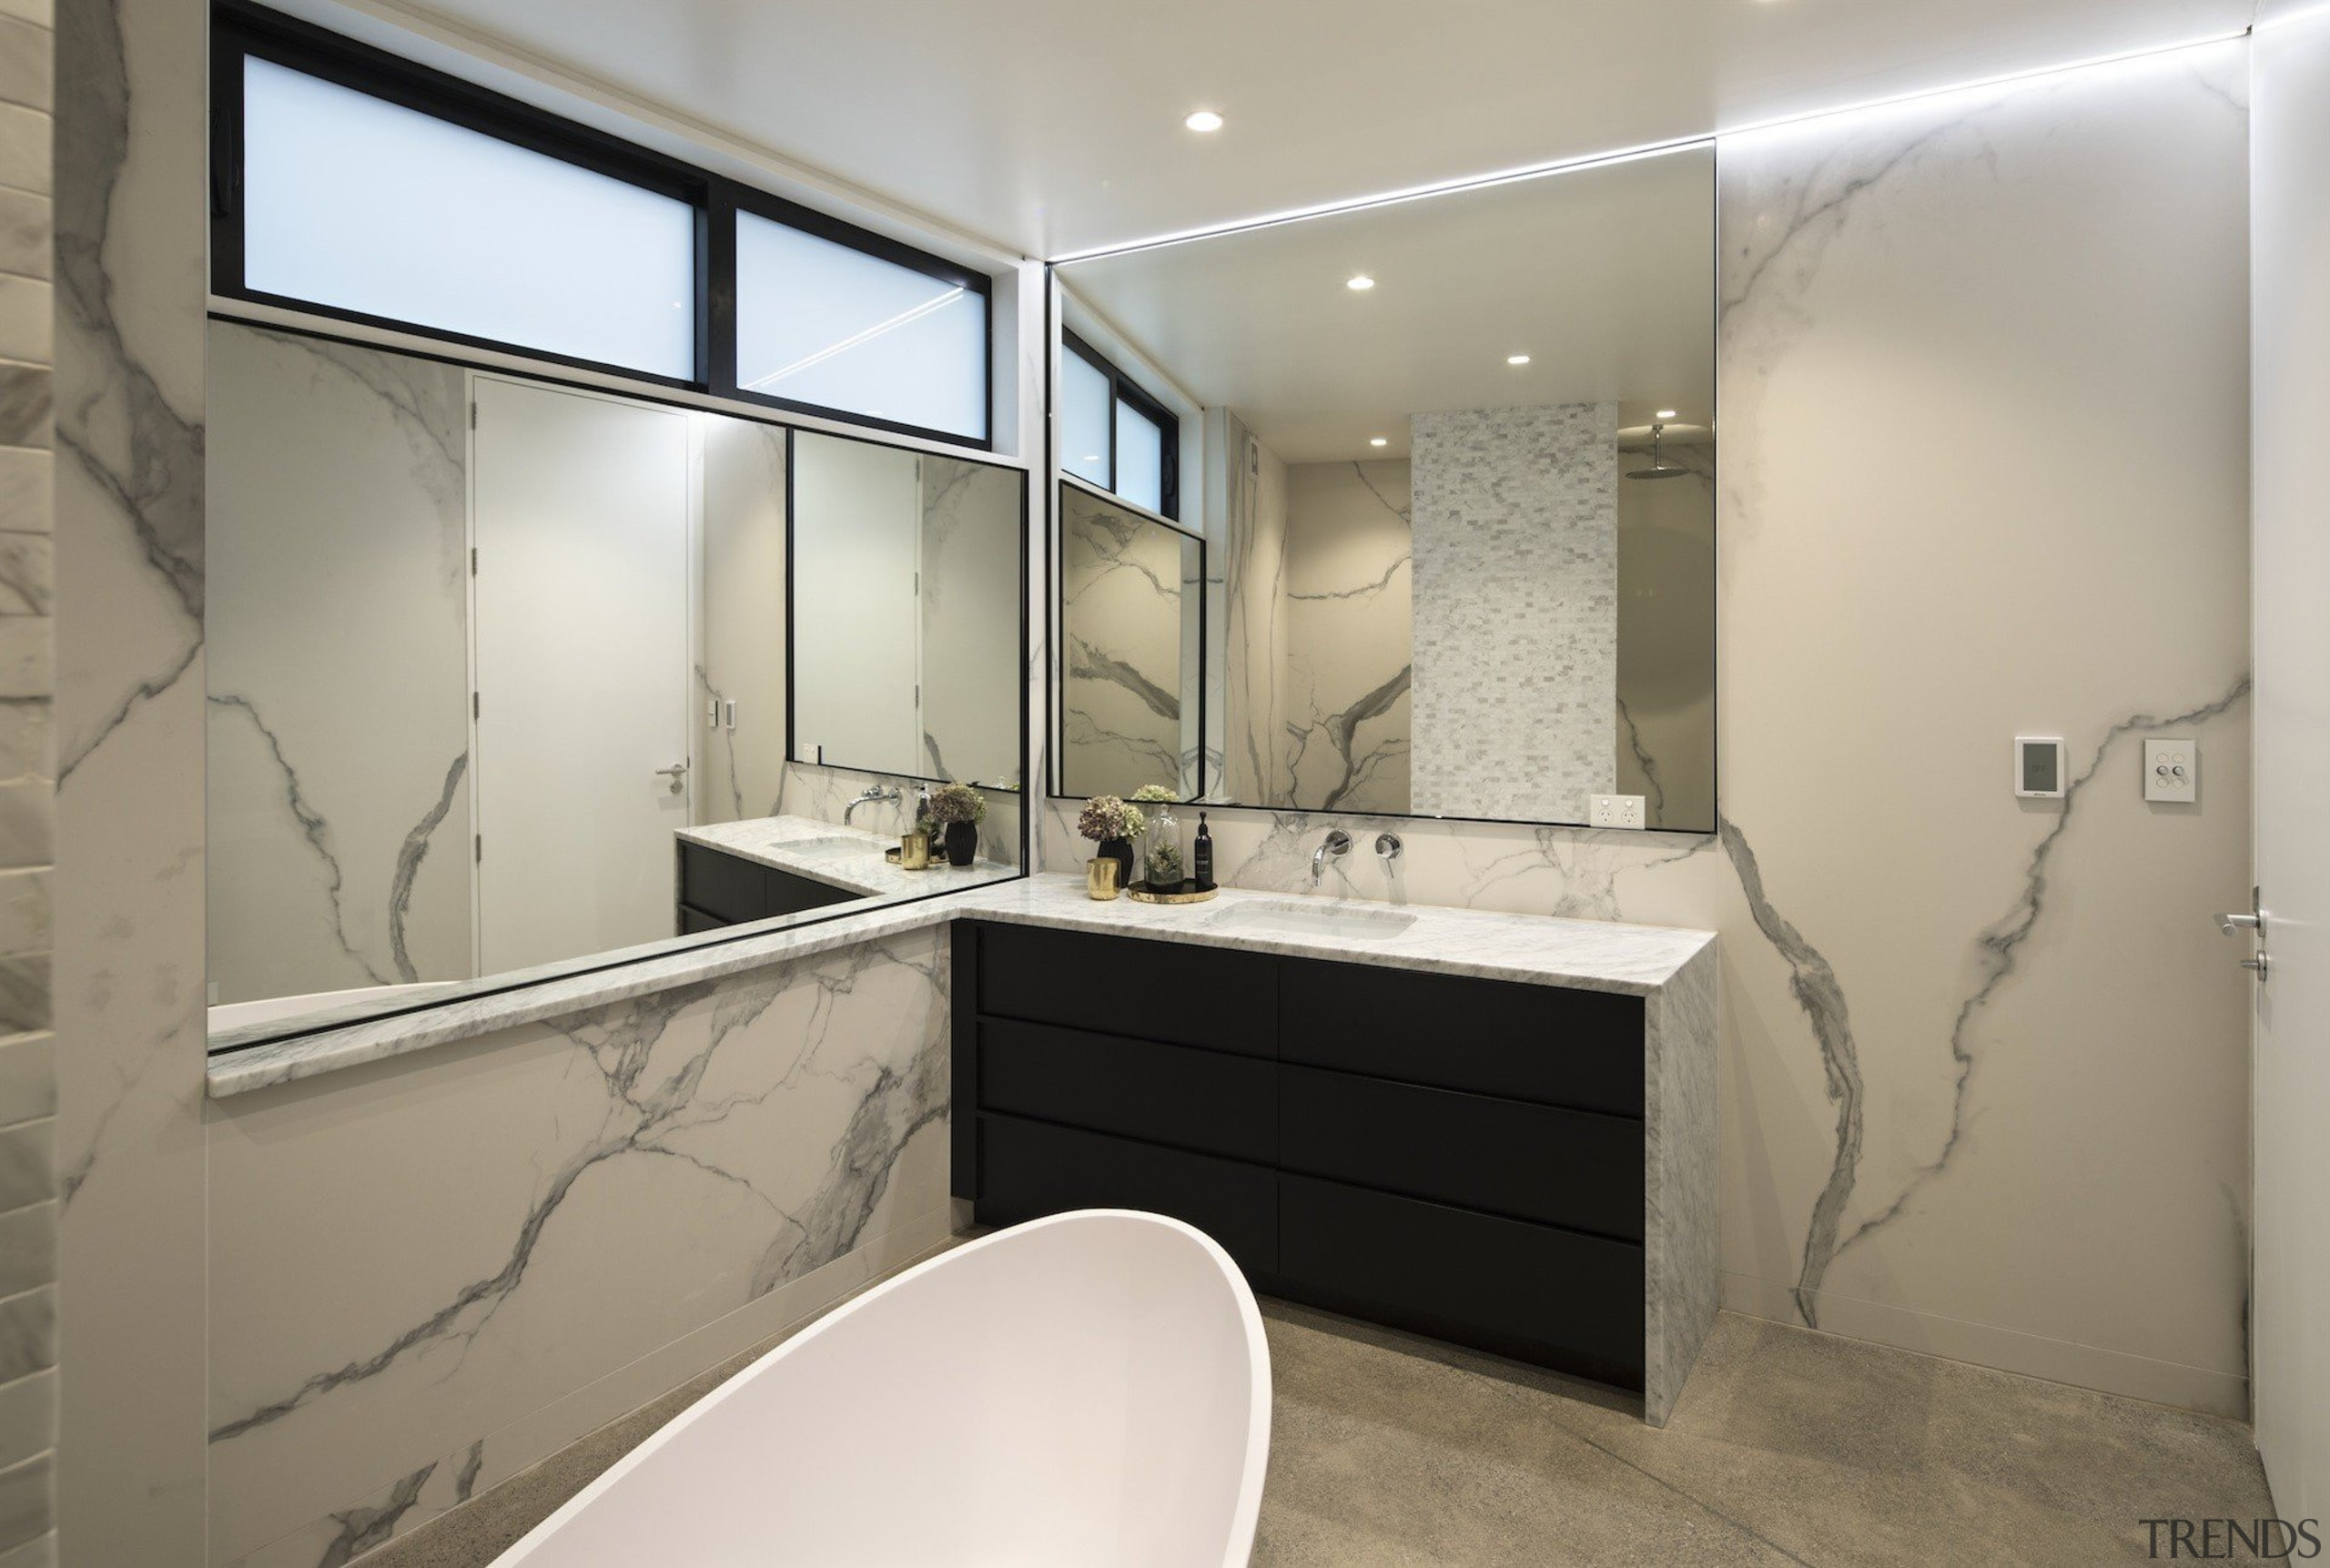 See more from Matter Architects - Matter Architects bathroom, interior design, real estate, room, gray